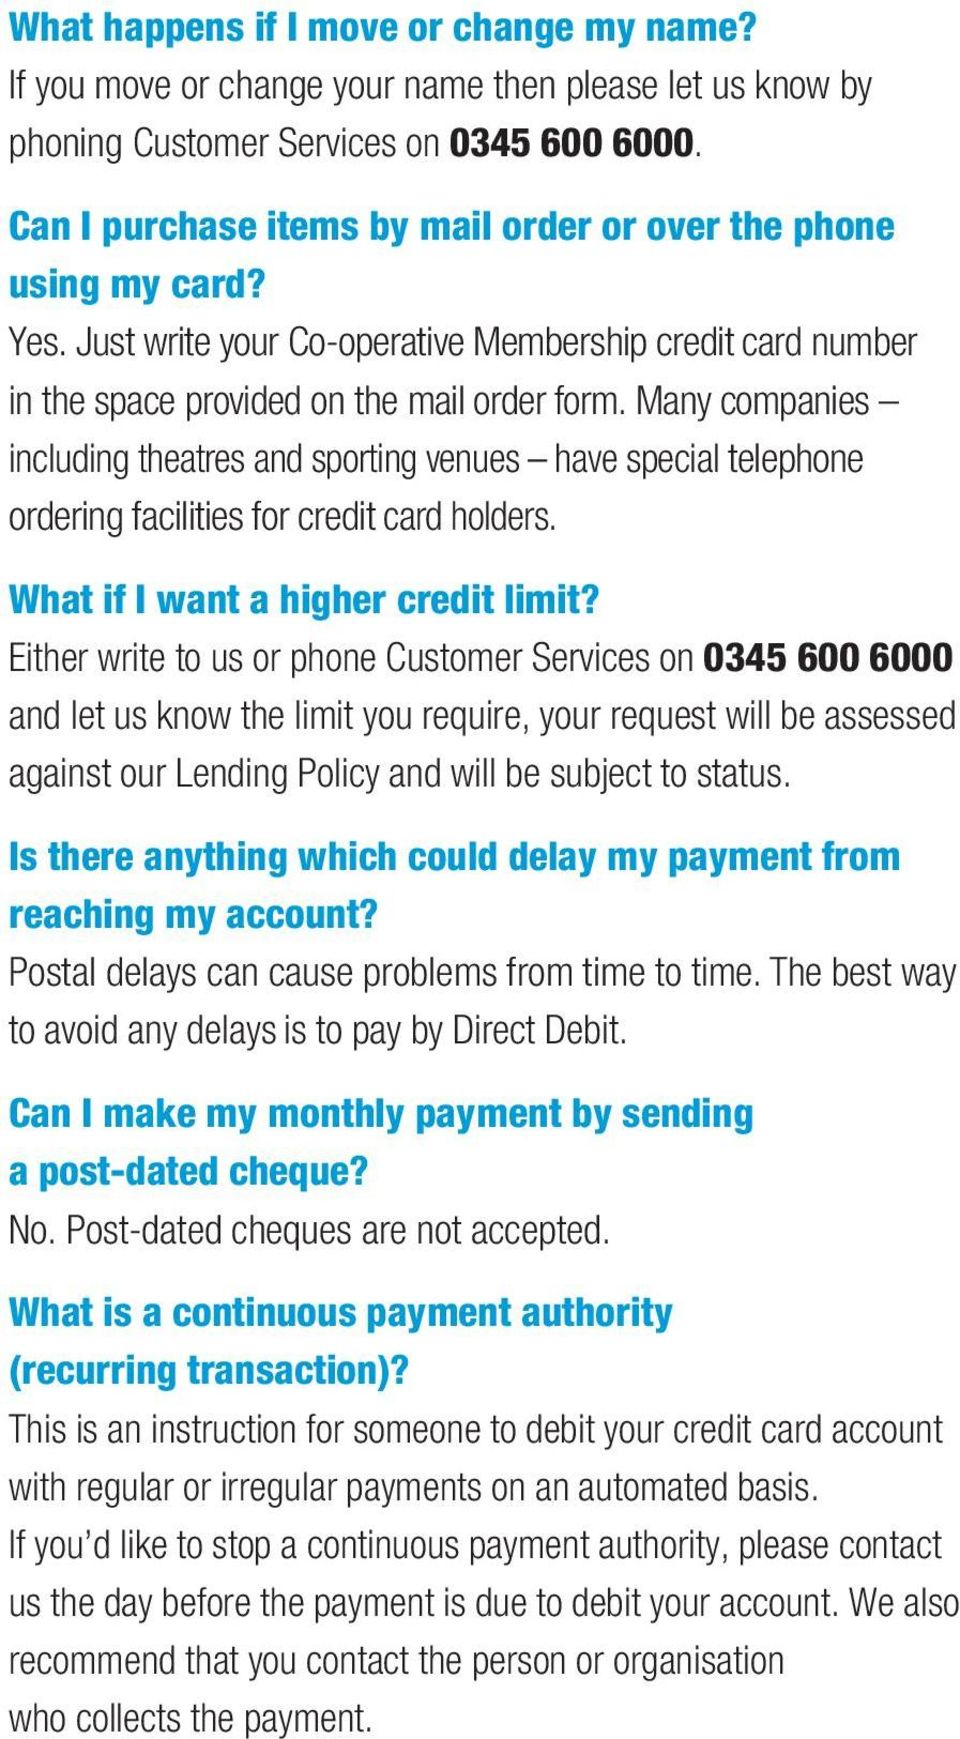 Many companies including theatres and sporting venues have special telephone ordering facilities for credit card holders. What if I want a higher credit limit?